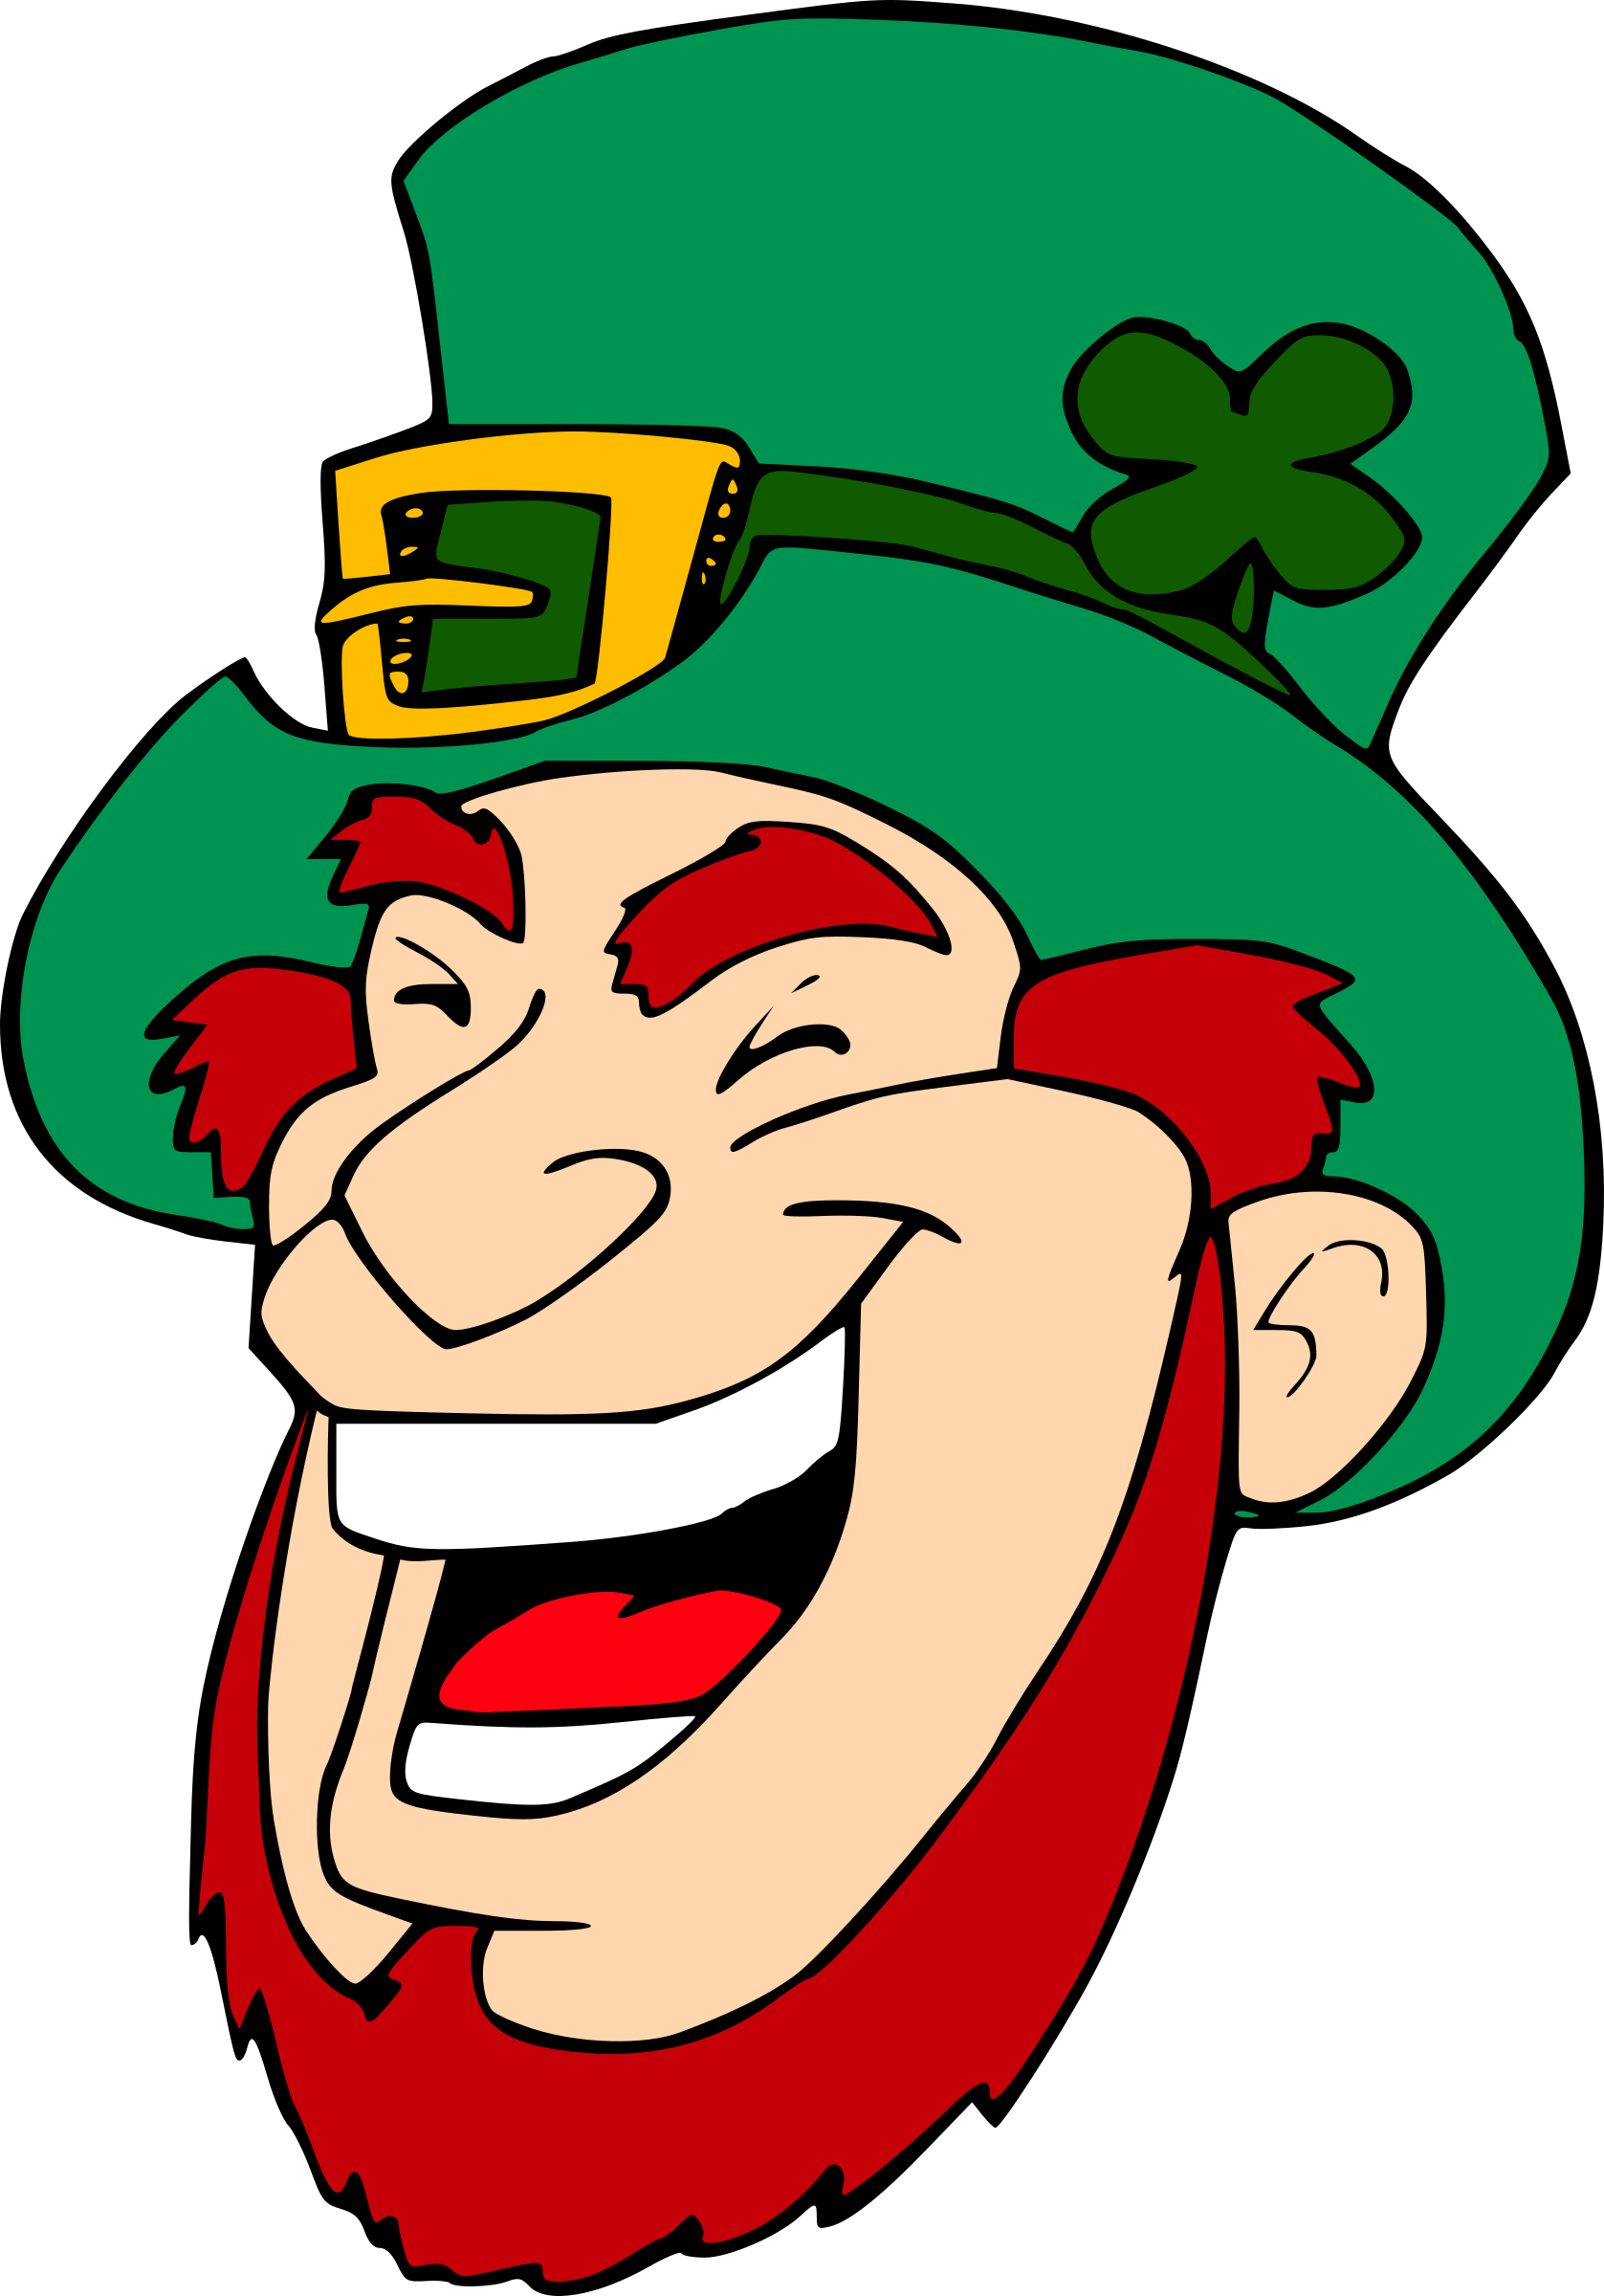 Person laughing clipart banner library stock Clipart - Laughing Leprechaun 1 banner library stock